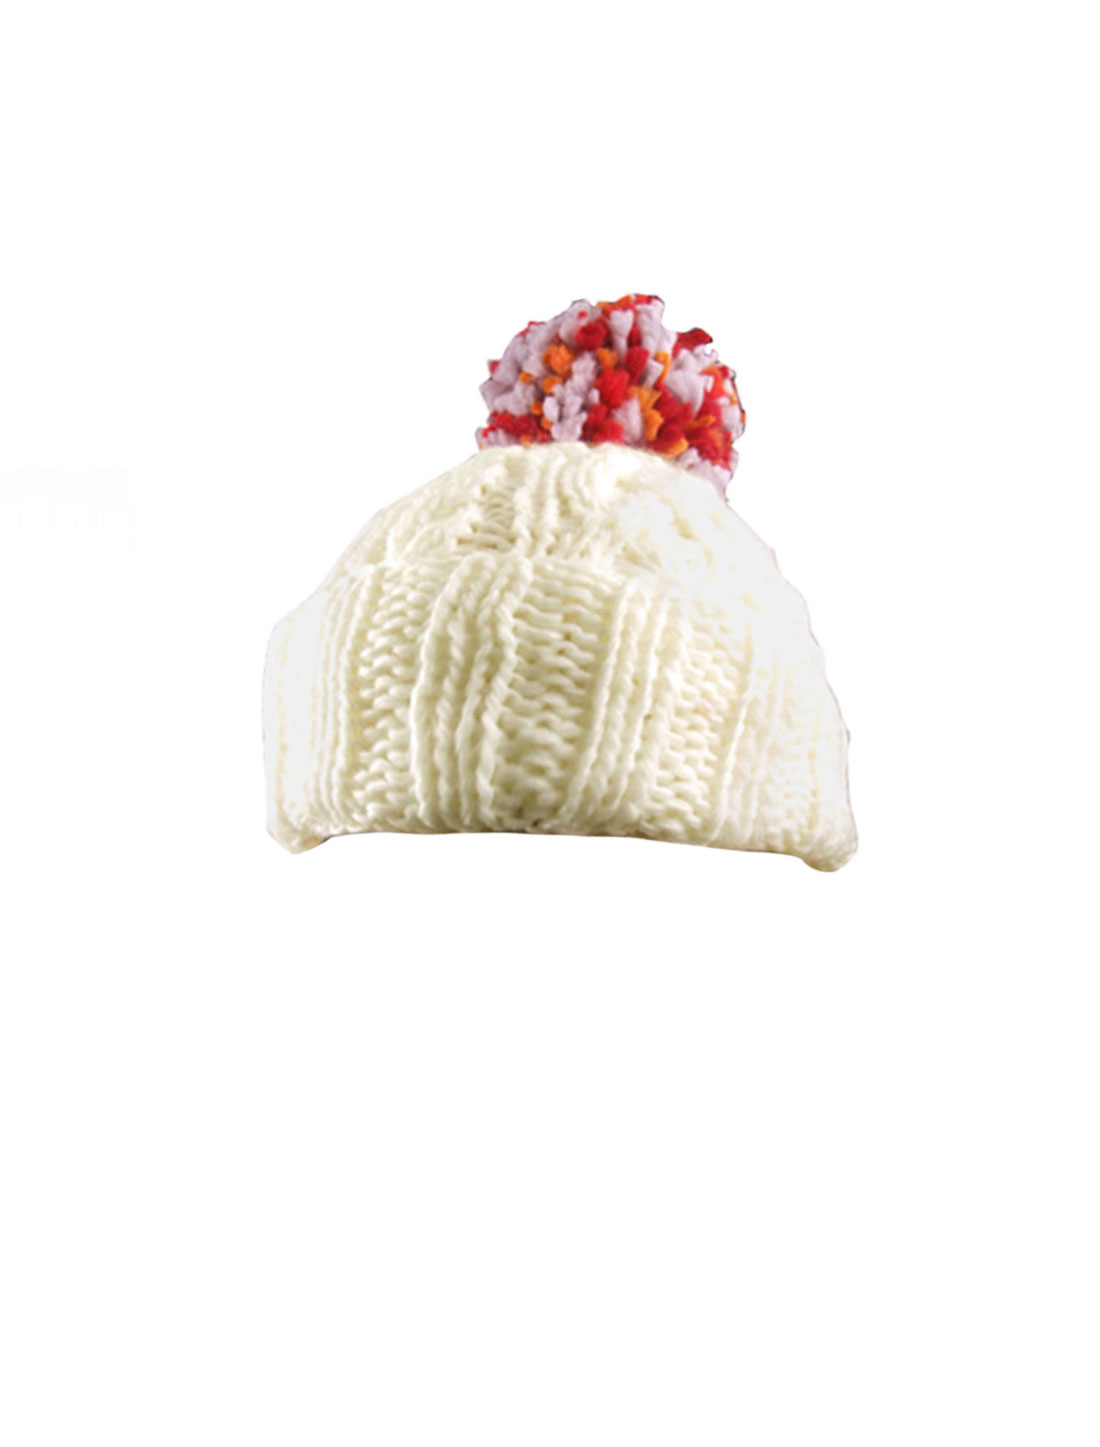 Tricolr Pom Pom Rool Up Cuff Off White Knitted Beret Hat for Woman